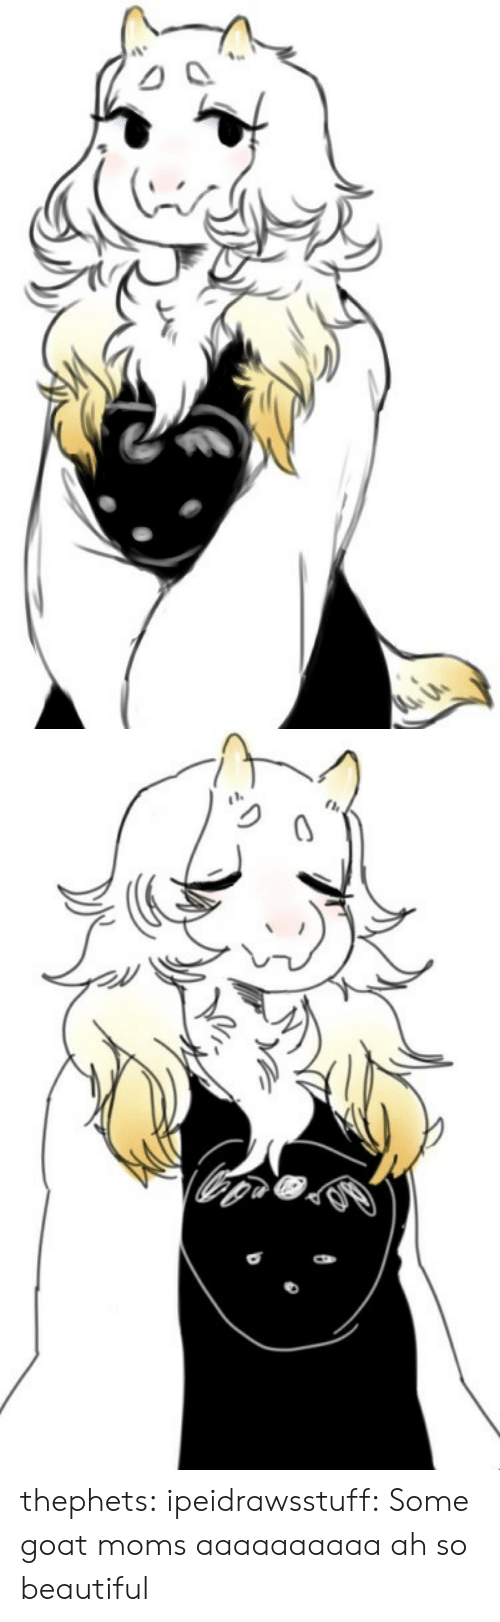 Aaaaaaaaaa: thephets:  ipeidrawsstuff:  Some goat moms aaaaaaaaaa  ah so beautiful